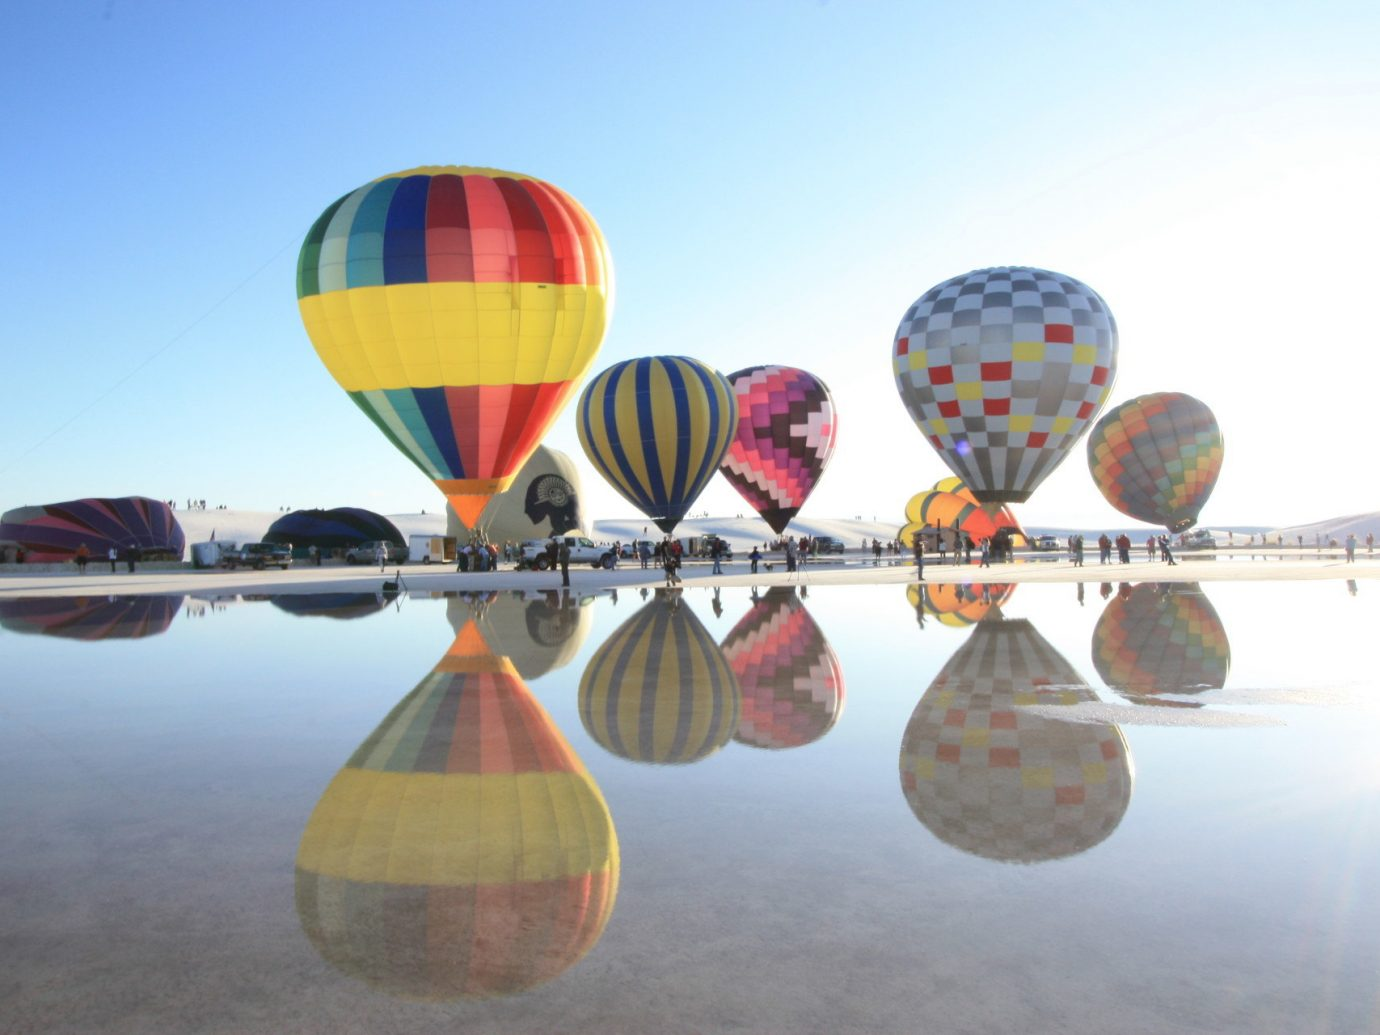 Trip Ideas transport aircraft balloon sky Hot Air Balloon vehicle atmosphere of earth hot air ballooning toy colorful colored